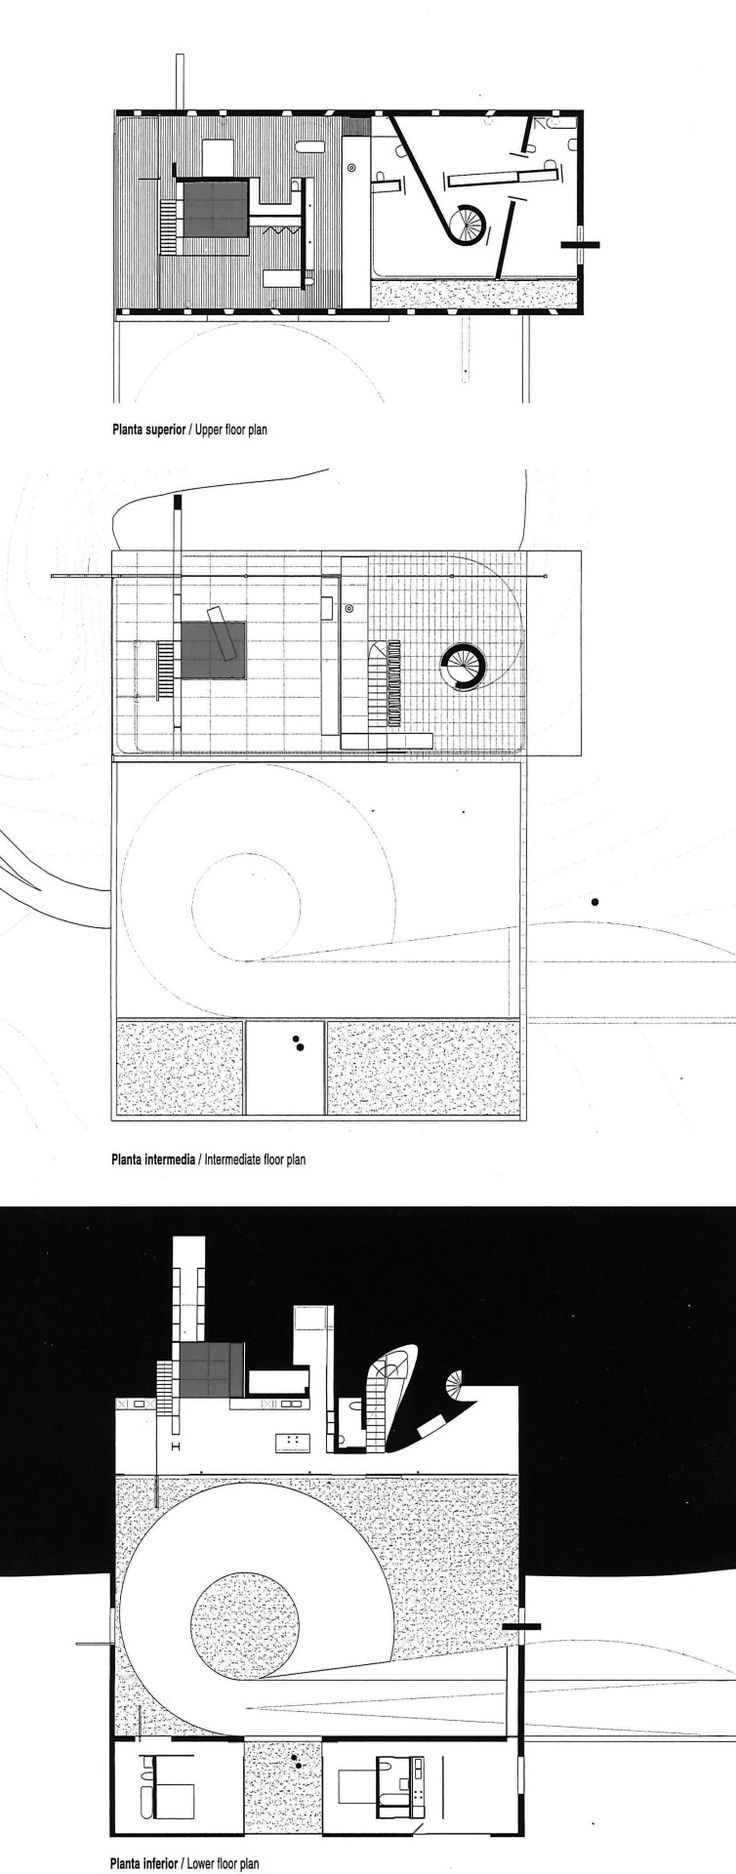 89 best architect drawings images on pinterest architecture plan